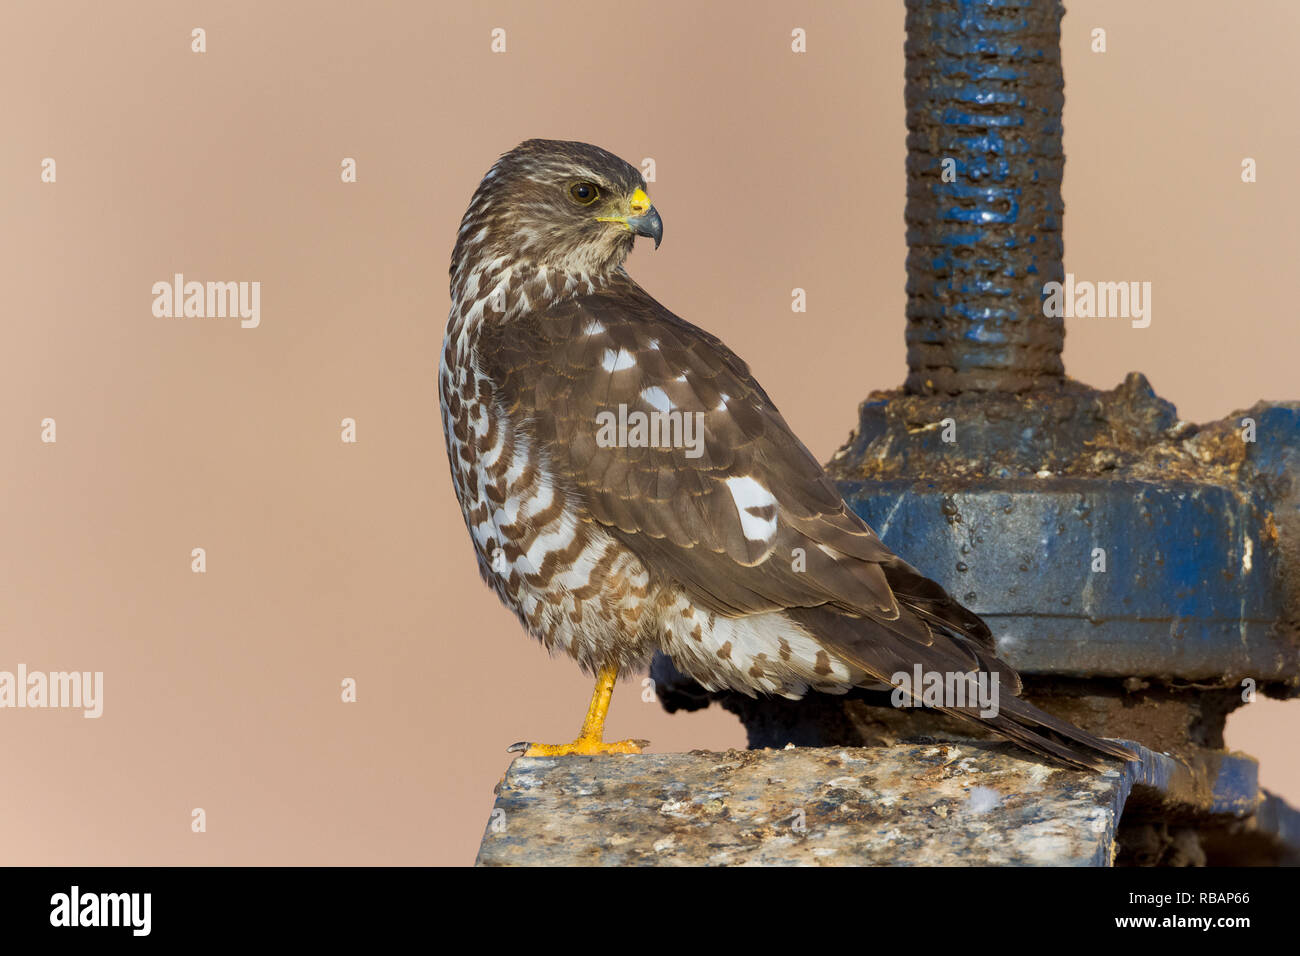 Levant Sparrowhawk (Accipiter brevipes), juvenile standing on a sluice - Stock Image